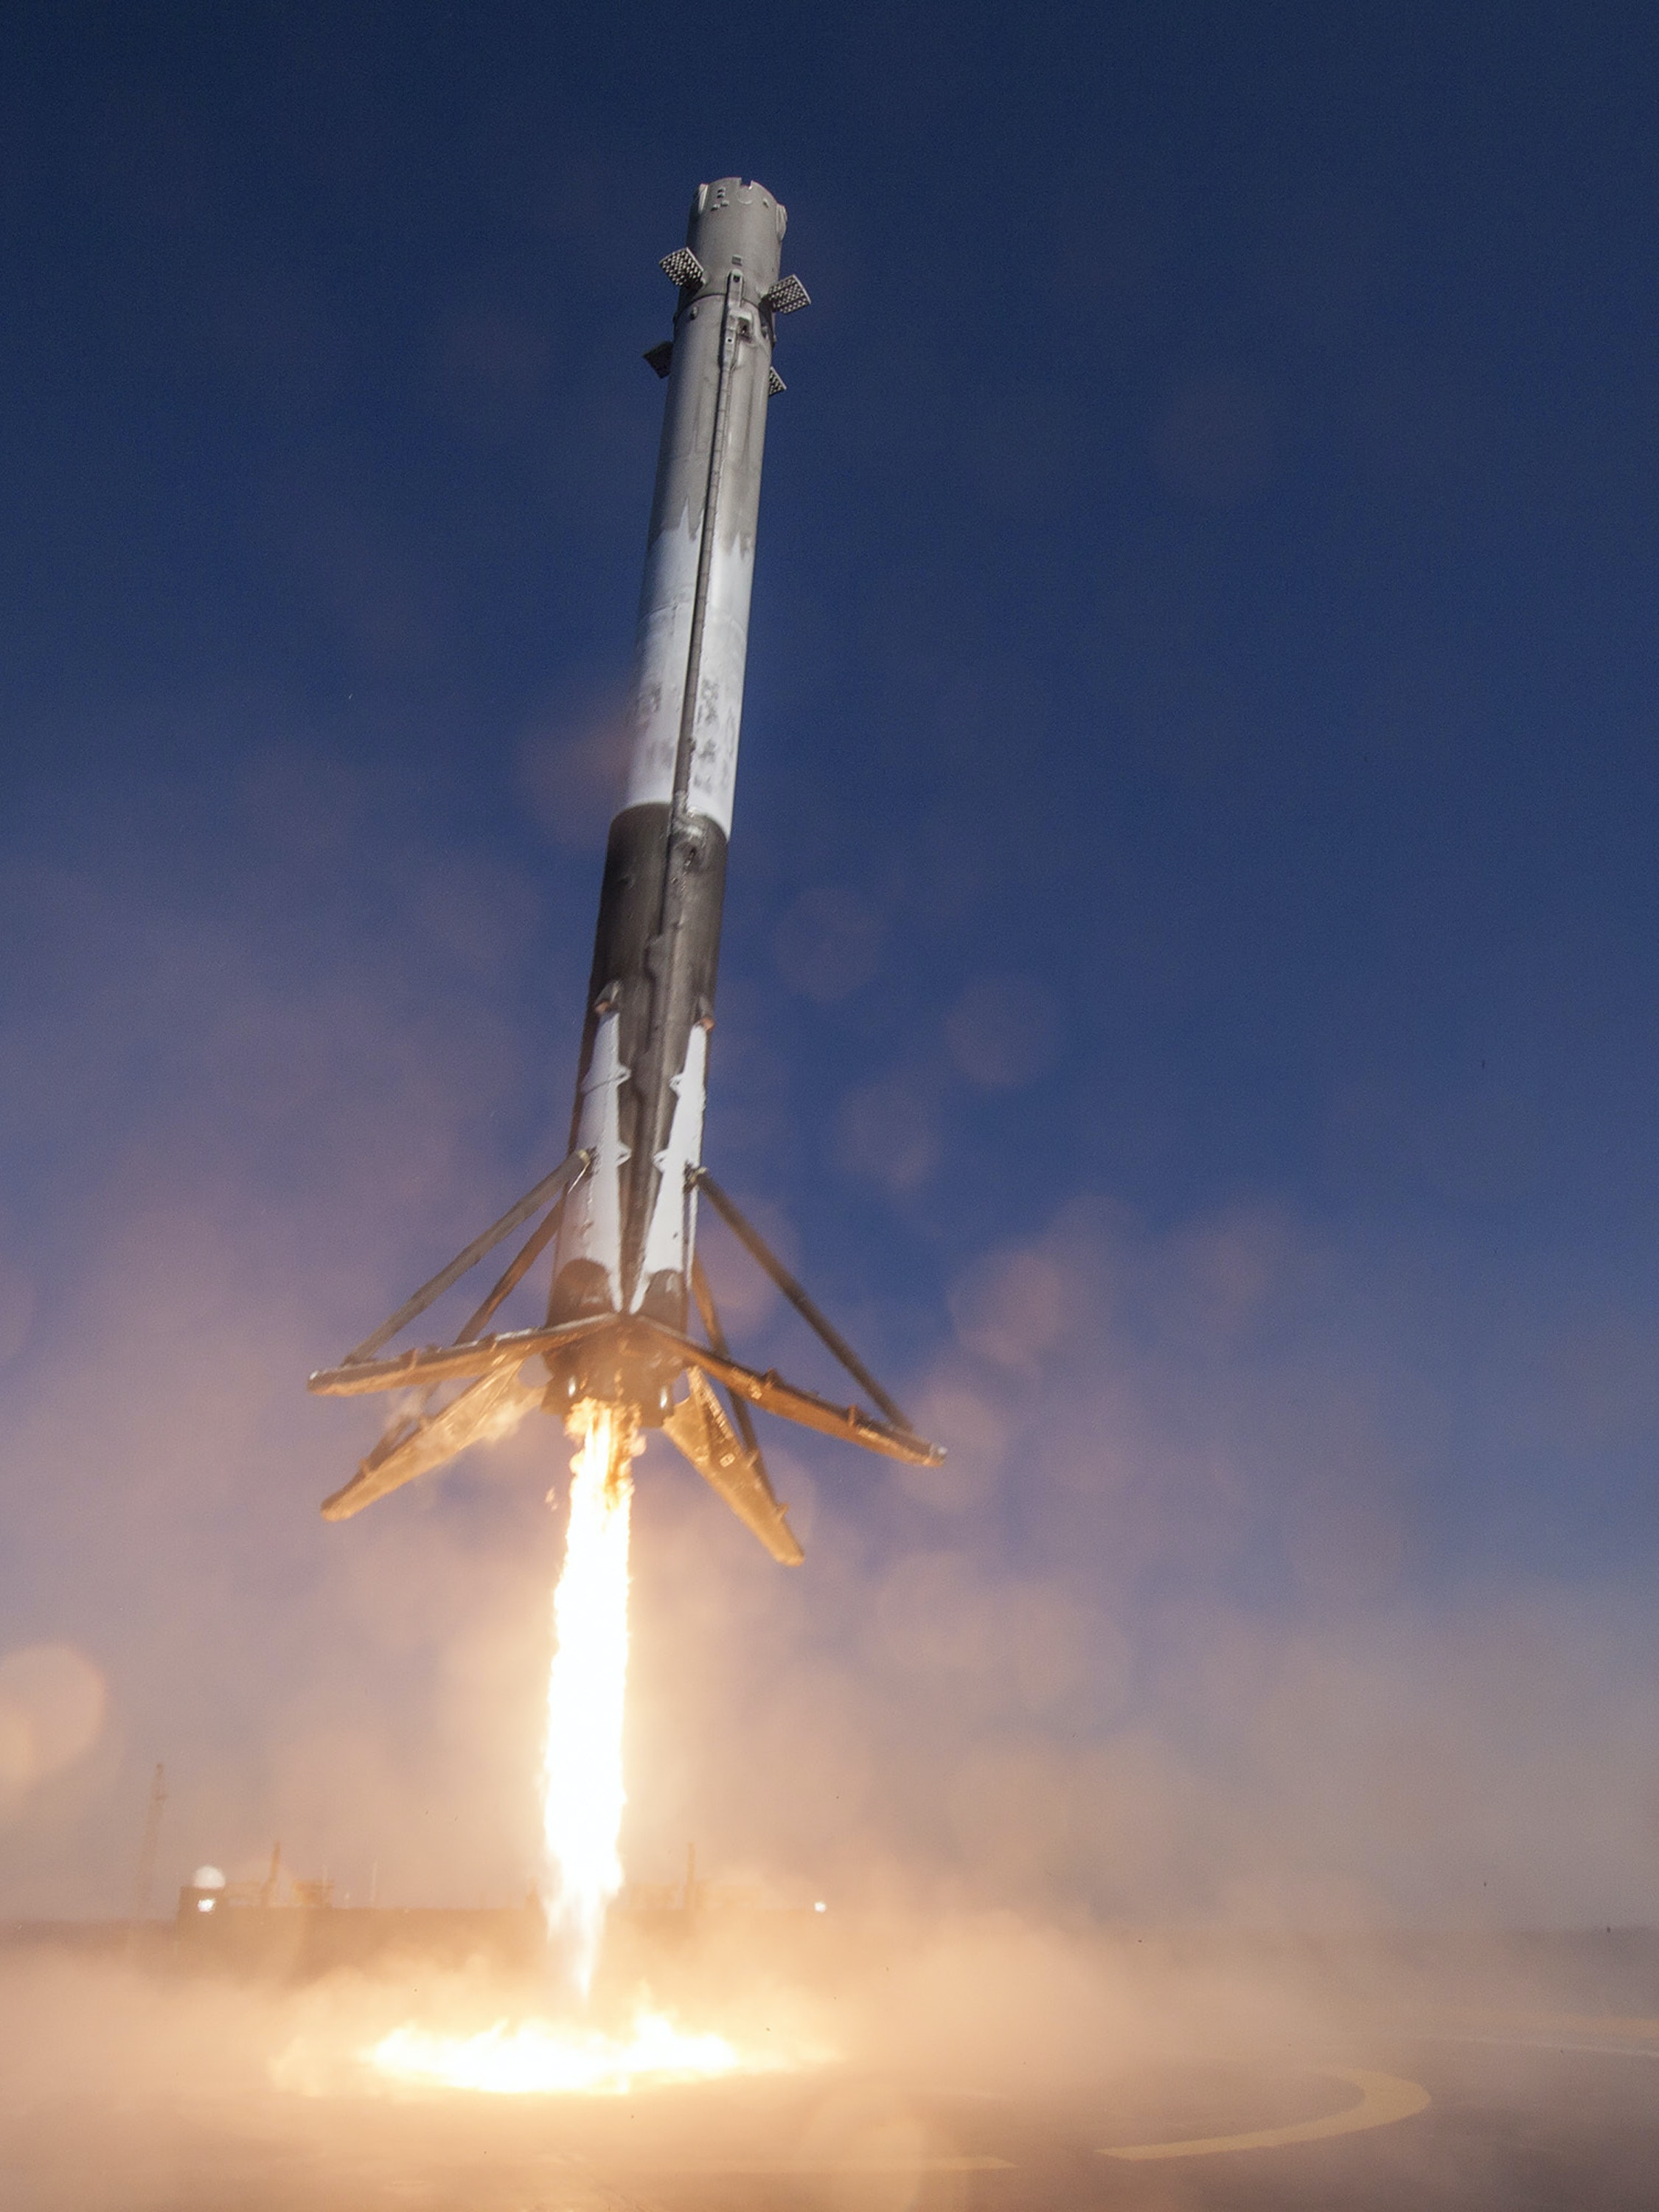 CAPE CANAVERAL, FL - APRIL 8: In this handout provided by the National Aeronautics and Space Administration (NASA), SpaceX's Falcon 9 rocket makes its first successful upright landing on the 'Of Course I Still Love You' droneship on April 8, 2016 some 200 miles off shore in the Atlantic Ocean after launching from Cape Canaveral, Florida. (Photo by NASA via Getty Images)